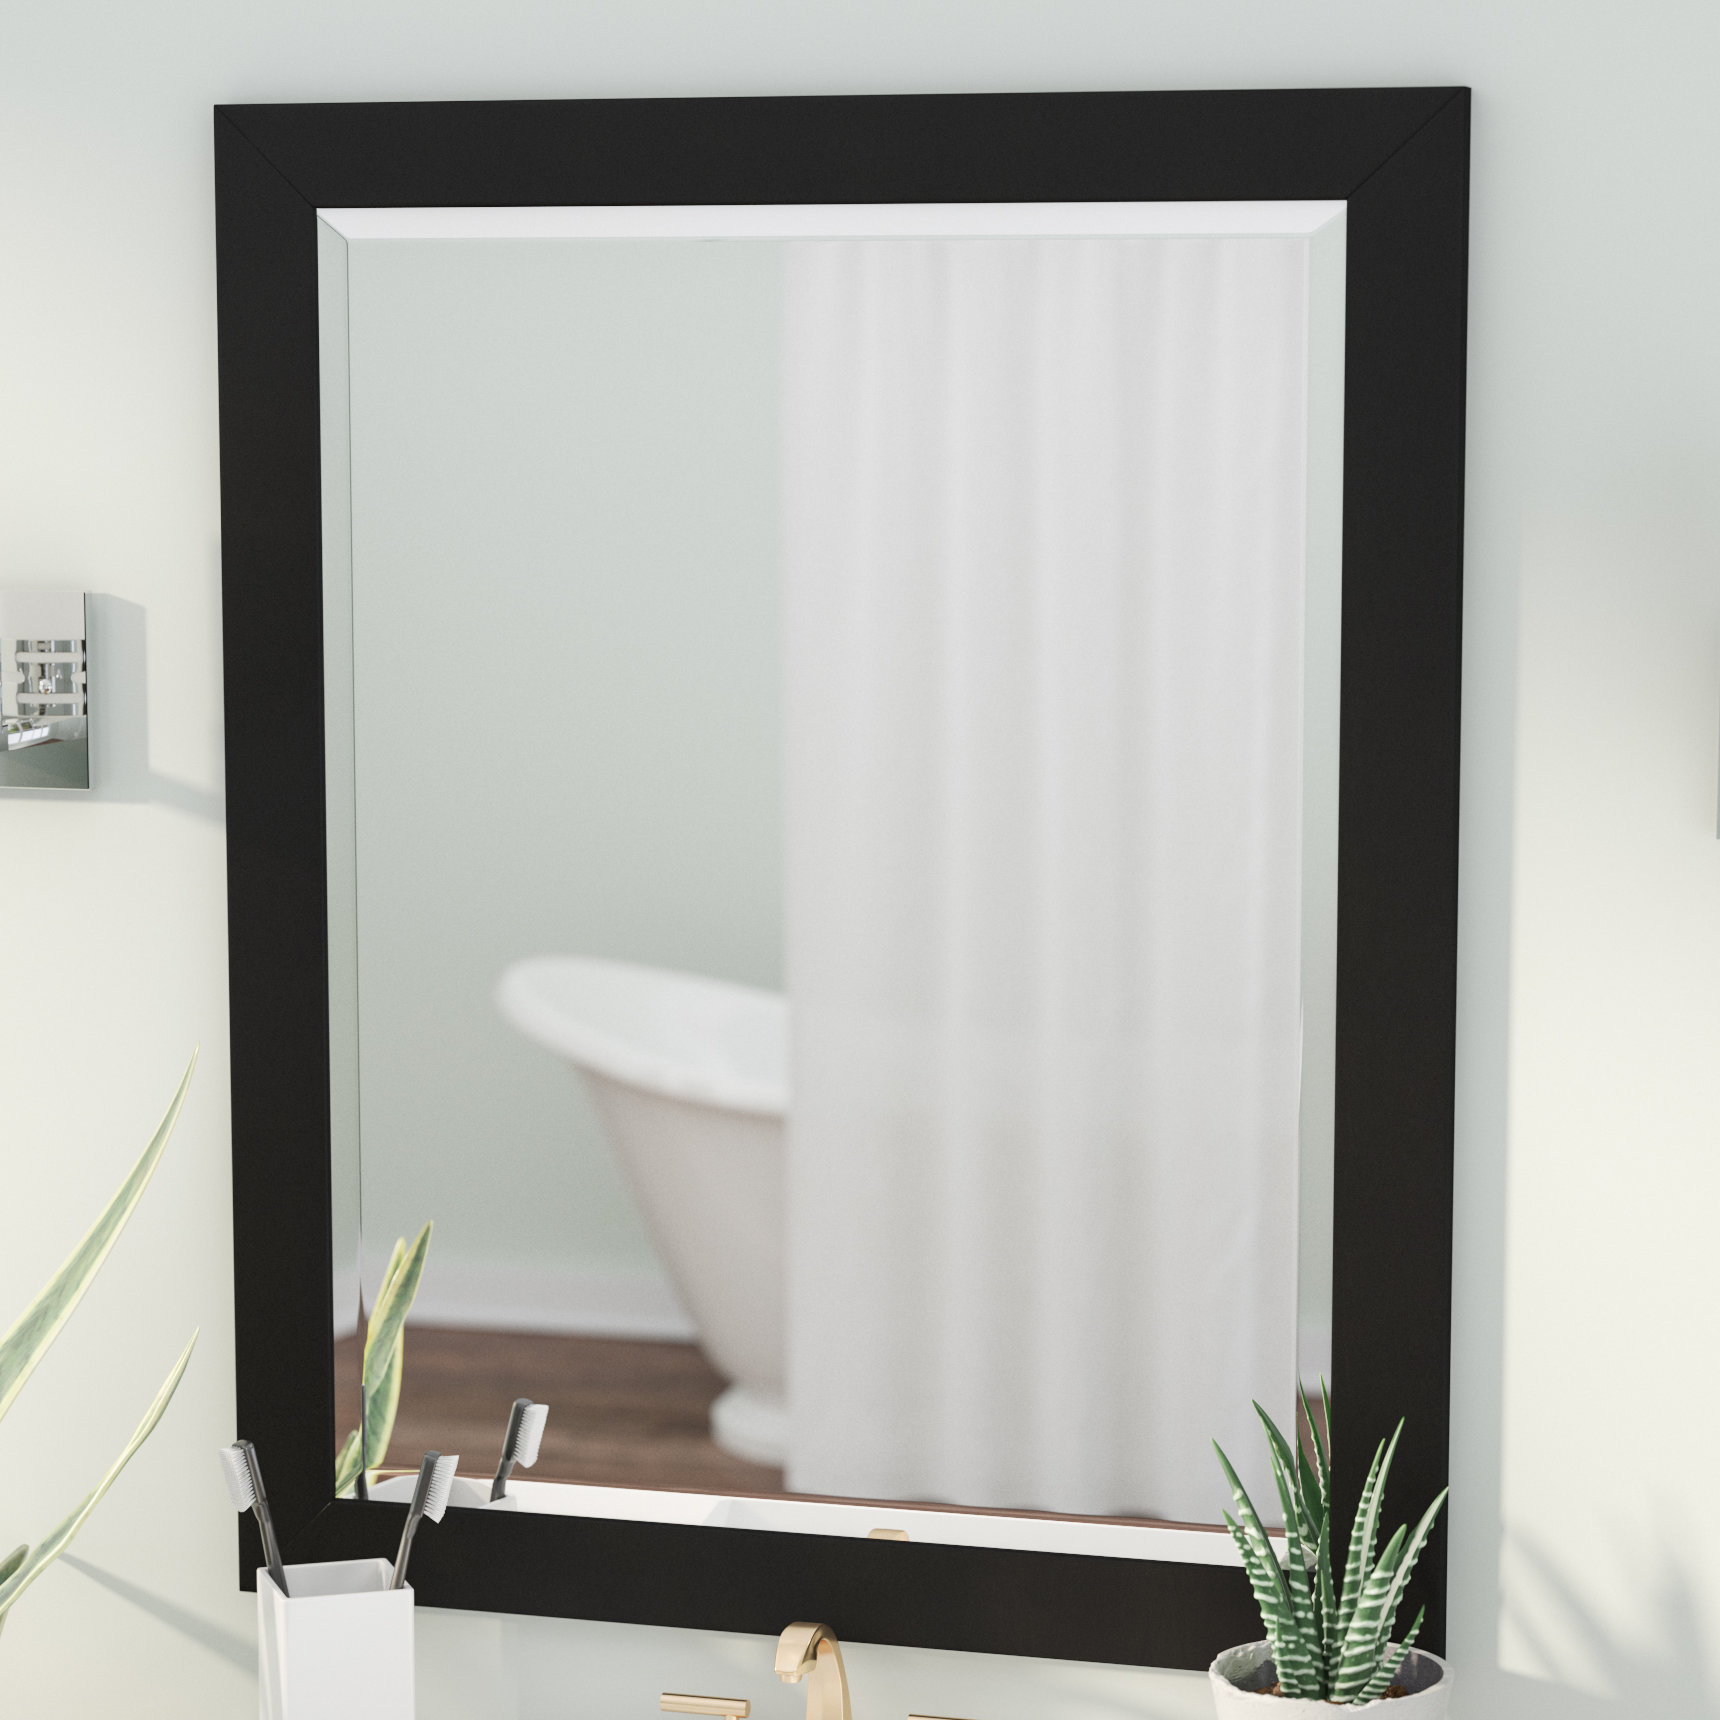 Handcrafted Beveled Vanity Wall Mirror With Regard To Most Current Vanity Wall Mirrors (View 17 of 20)